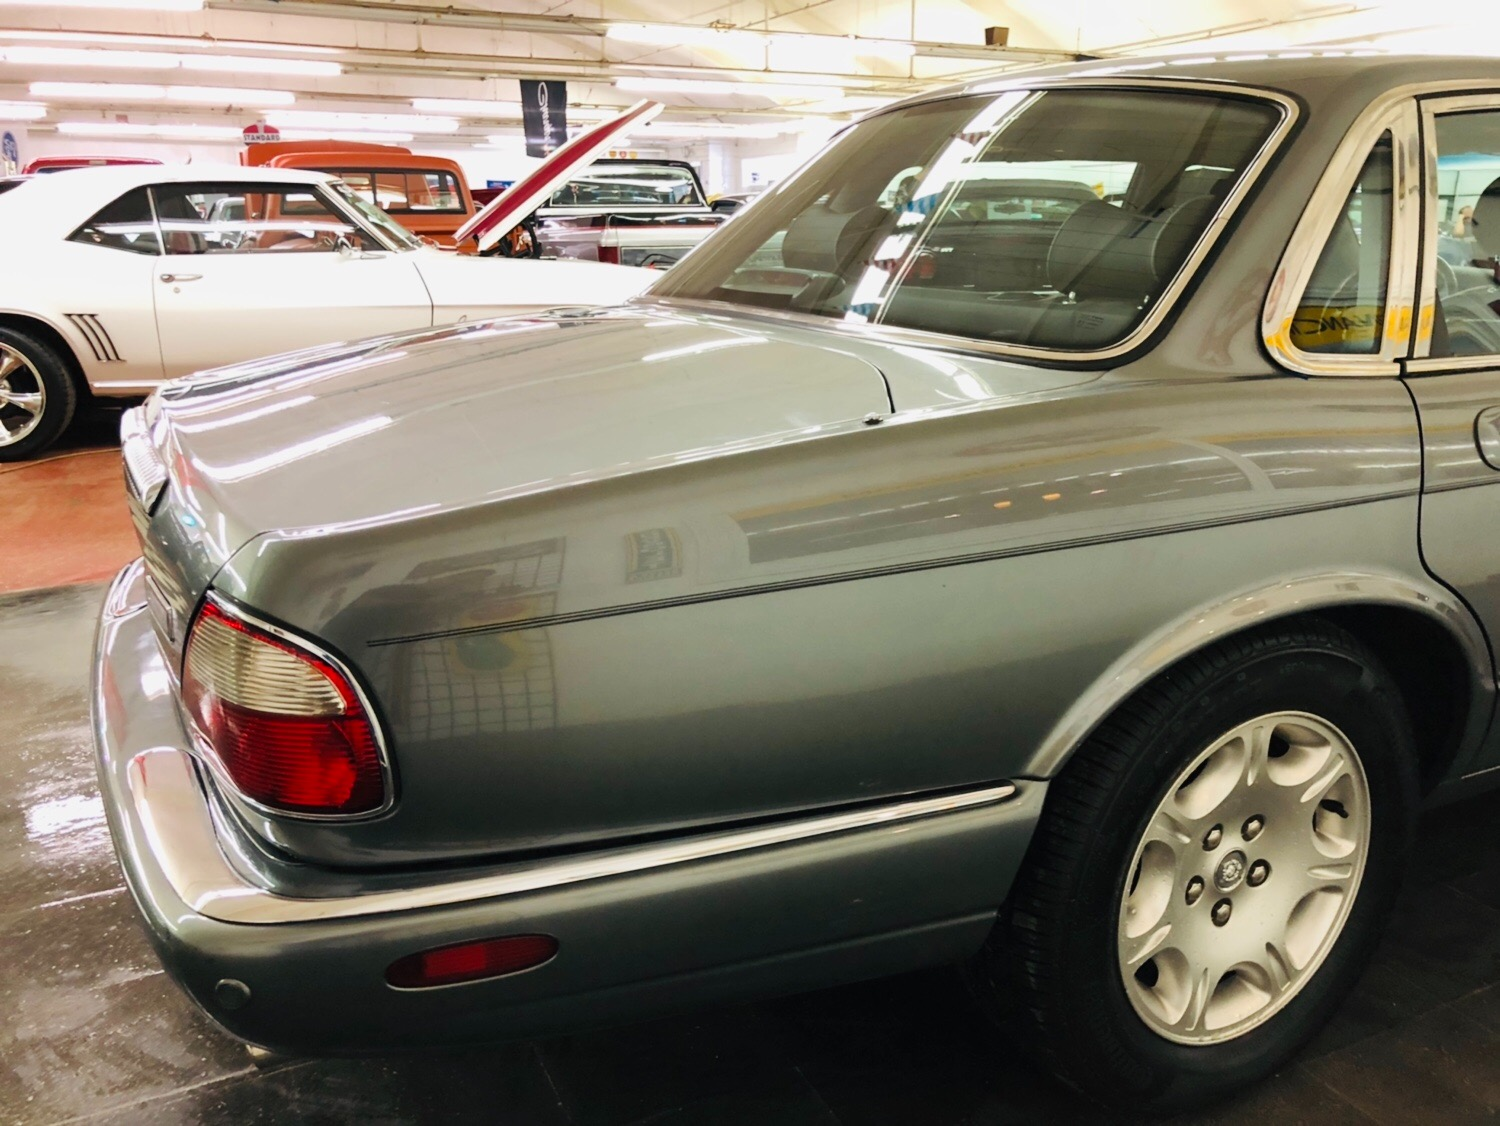 Used 2003 Jaguar XJ-Series -BUY WITH CONFIDENCE-2 OWNER - LOW MILES - SEE VIDEO | Mundelein, IL